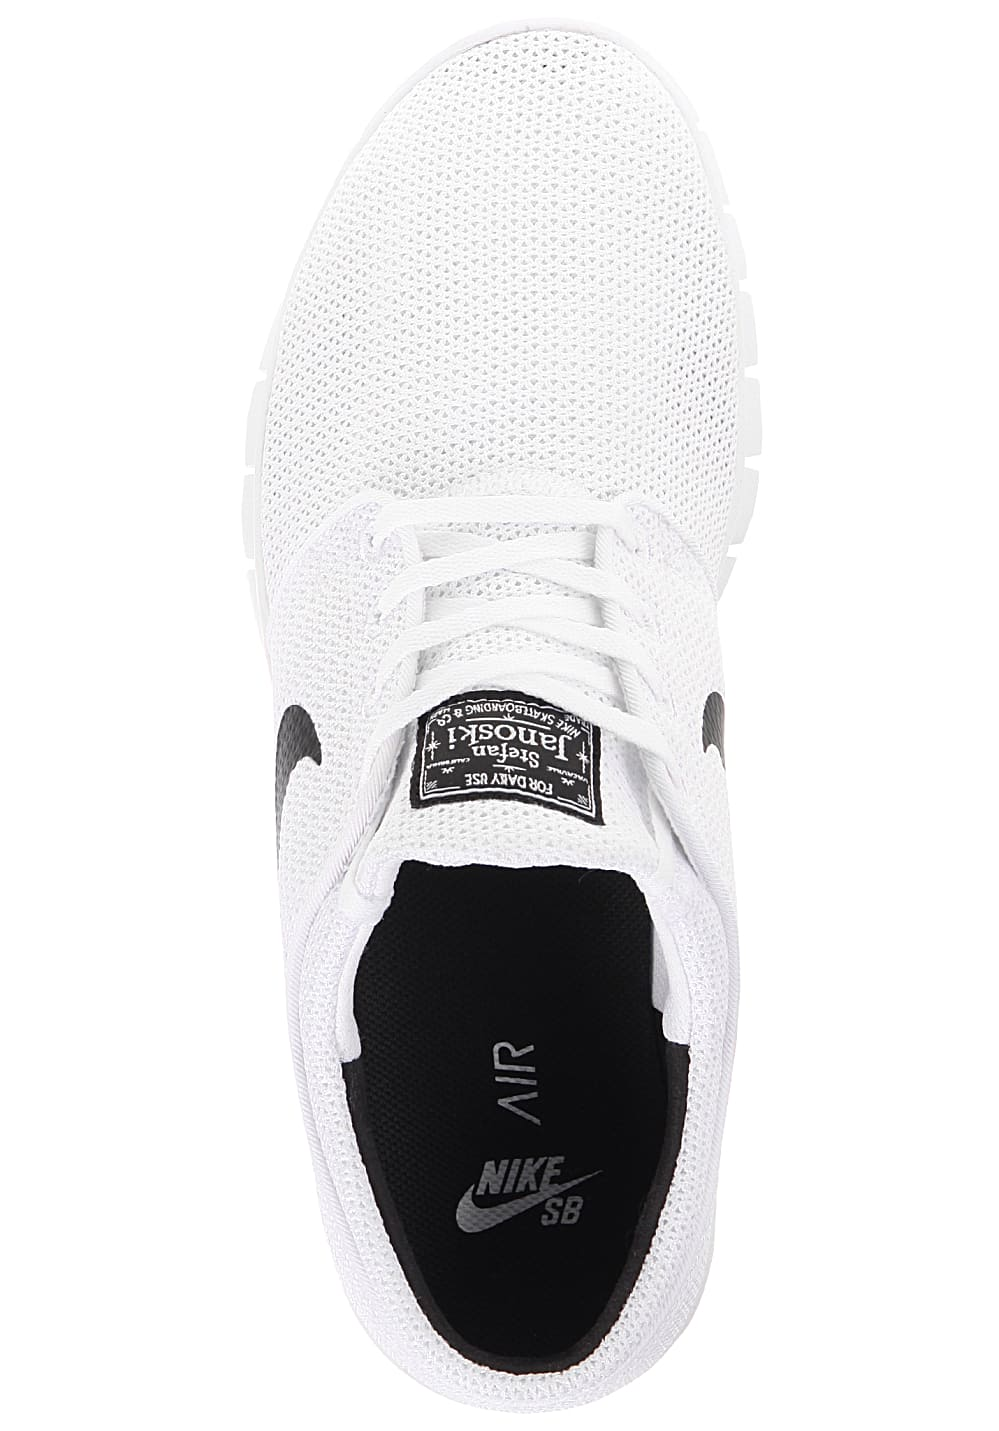 473466b96a2535 NIKE SB Stefan Janoski Max - Sneakers - White - Planet Sports